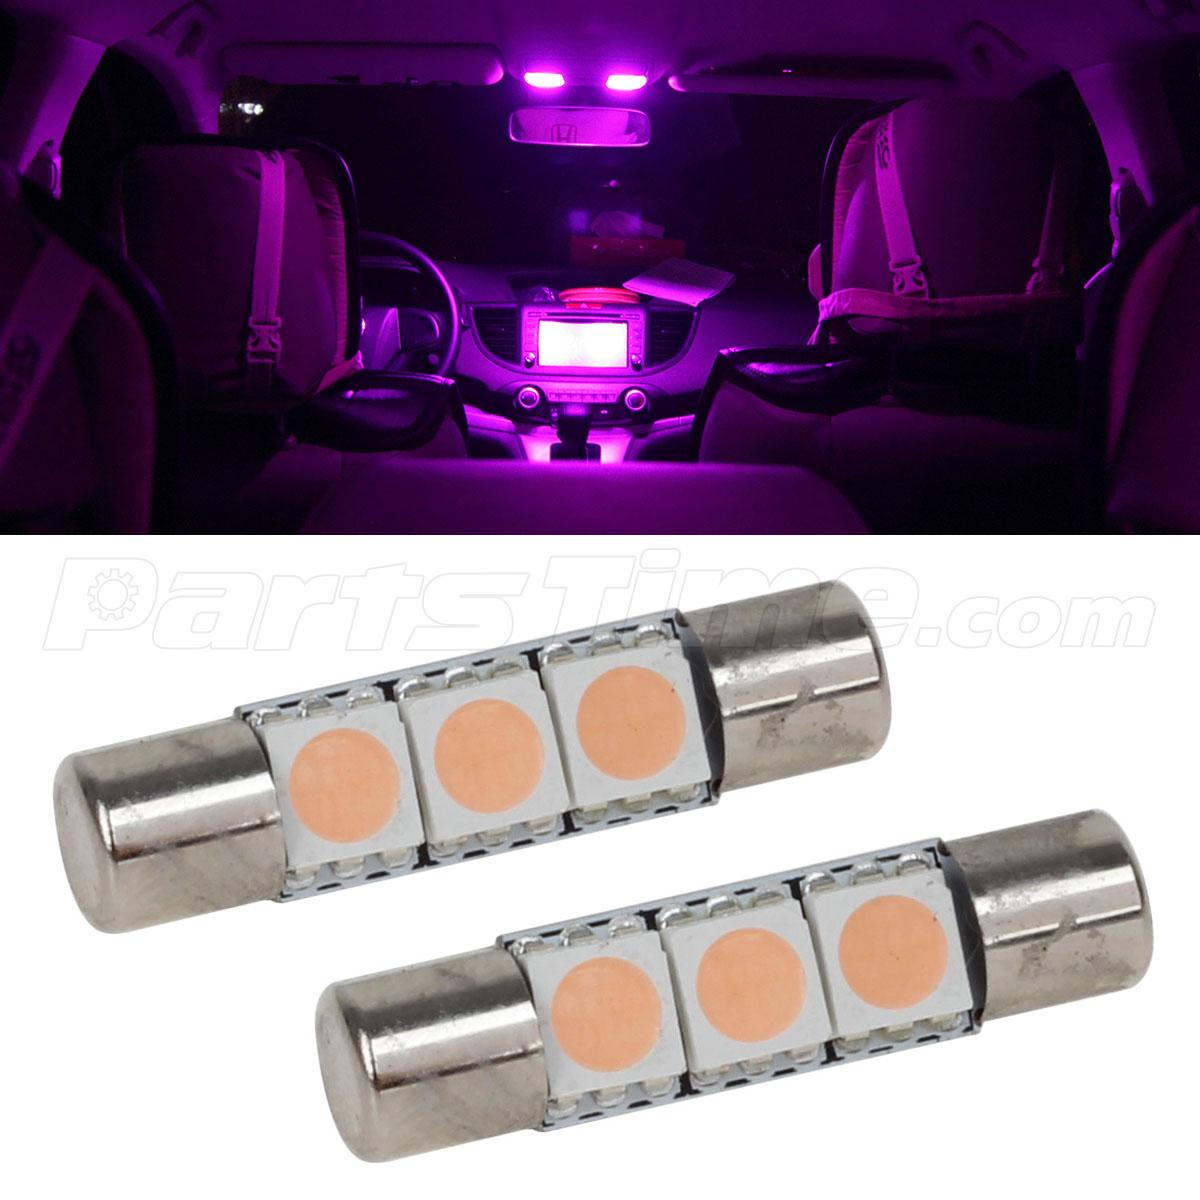 Vanity Light For Car Visor : 2pcs Pink Purple 3SMD LED Bulb for Car Vanity Mirror Lights Sun Visor Lamp eBay